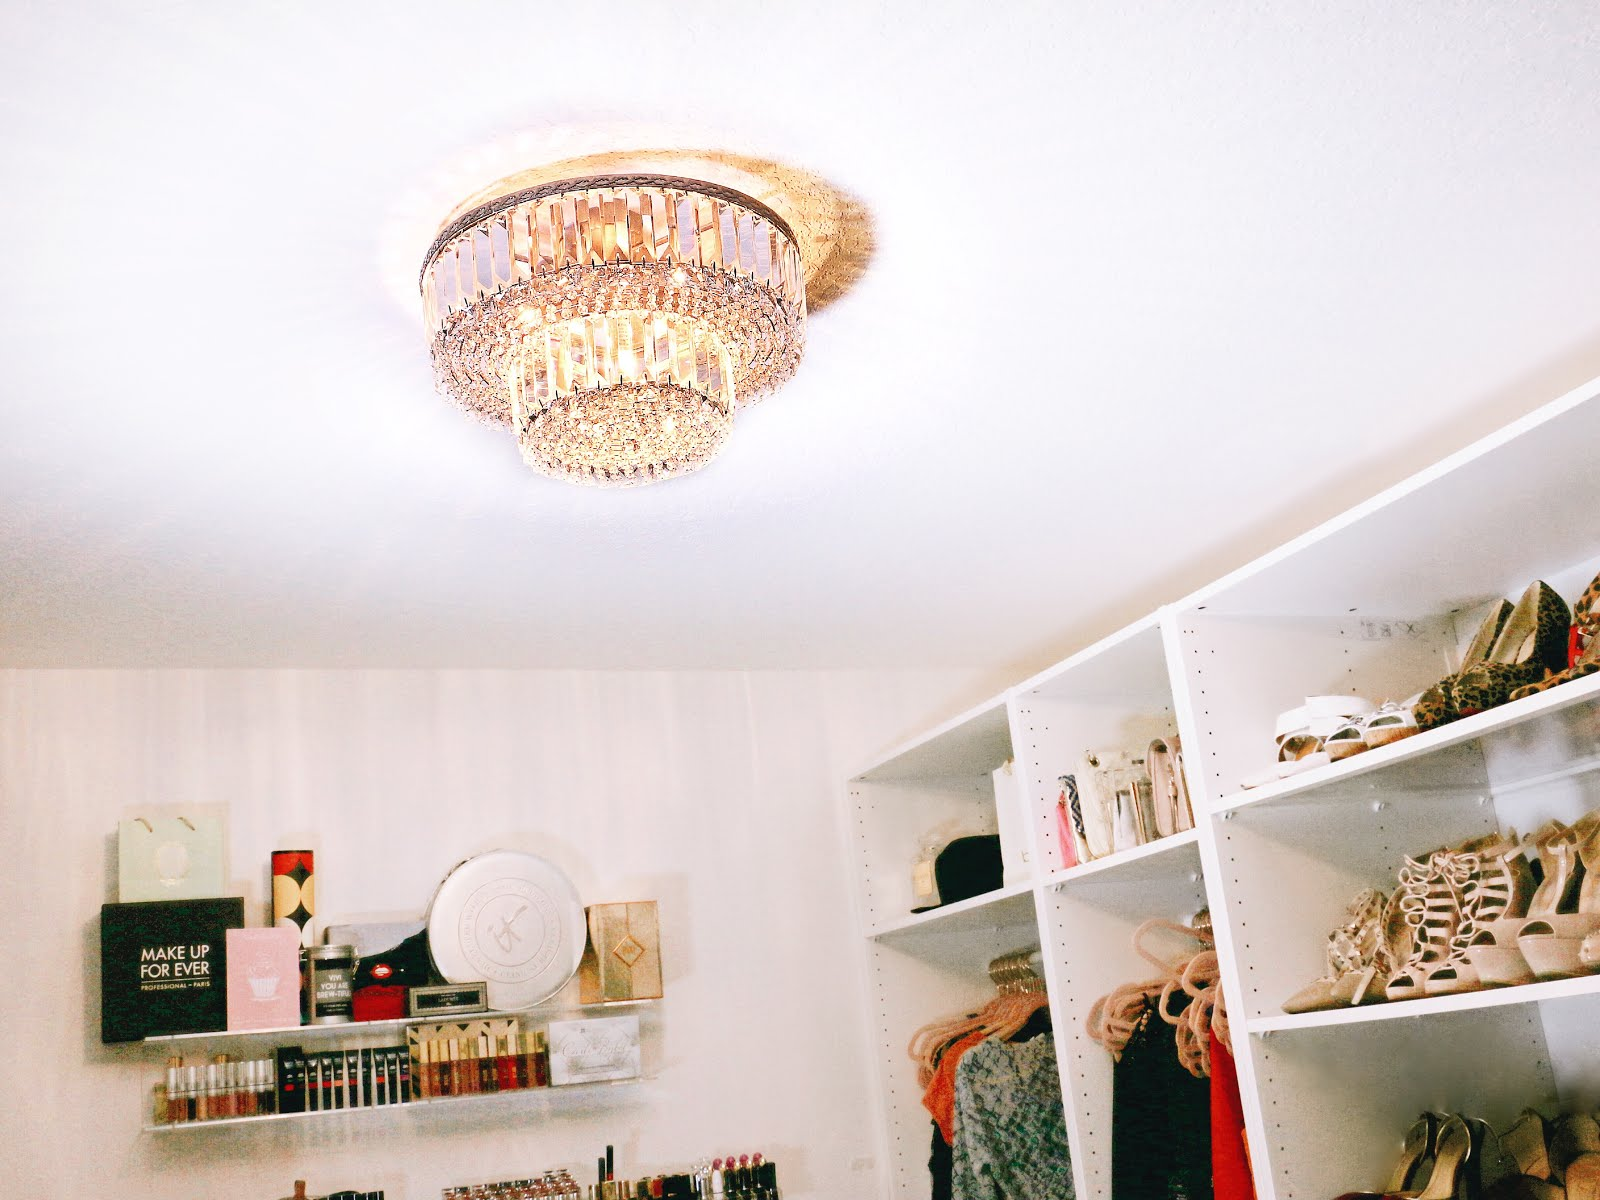 Completing my glam room with a beautiful chandelier from lamps plus